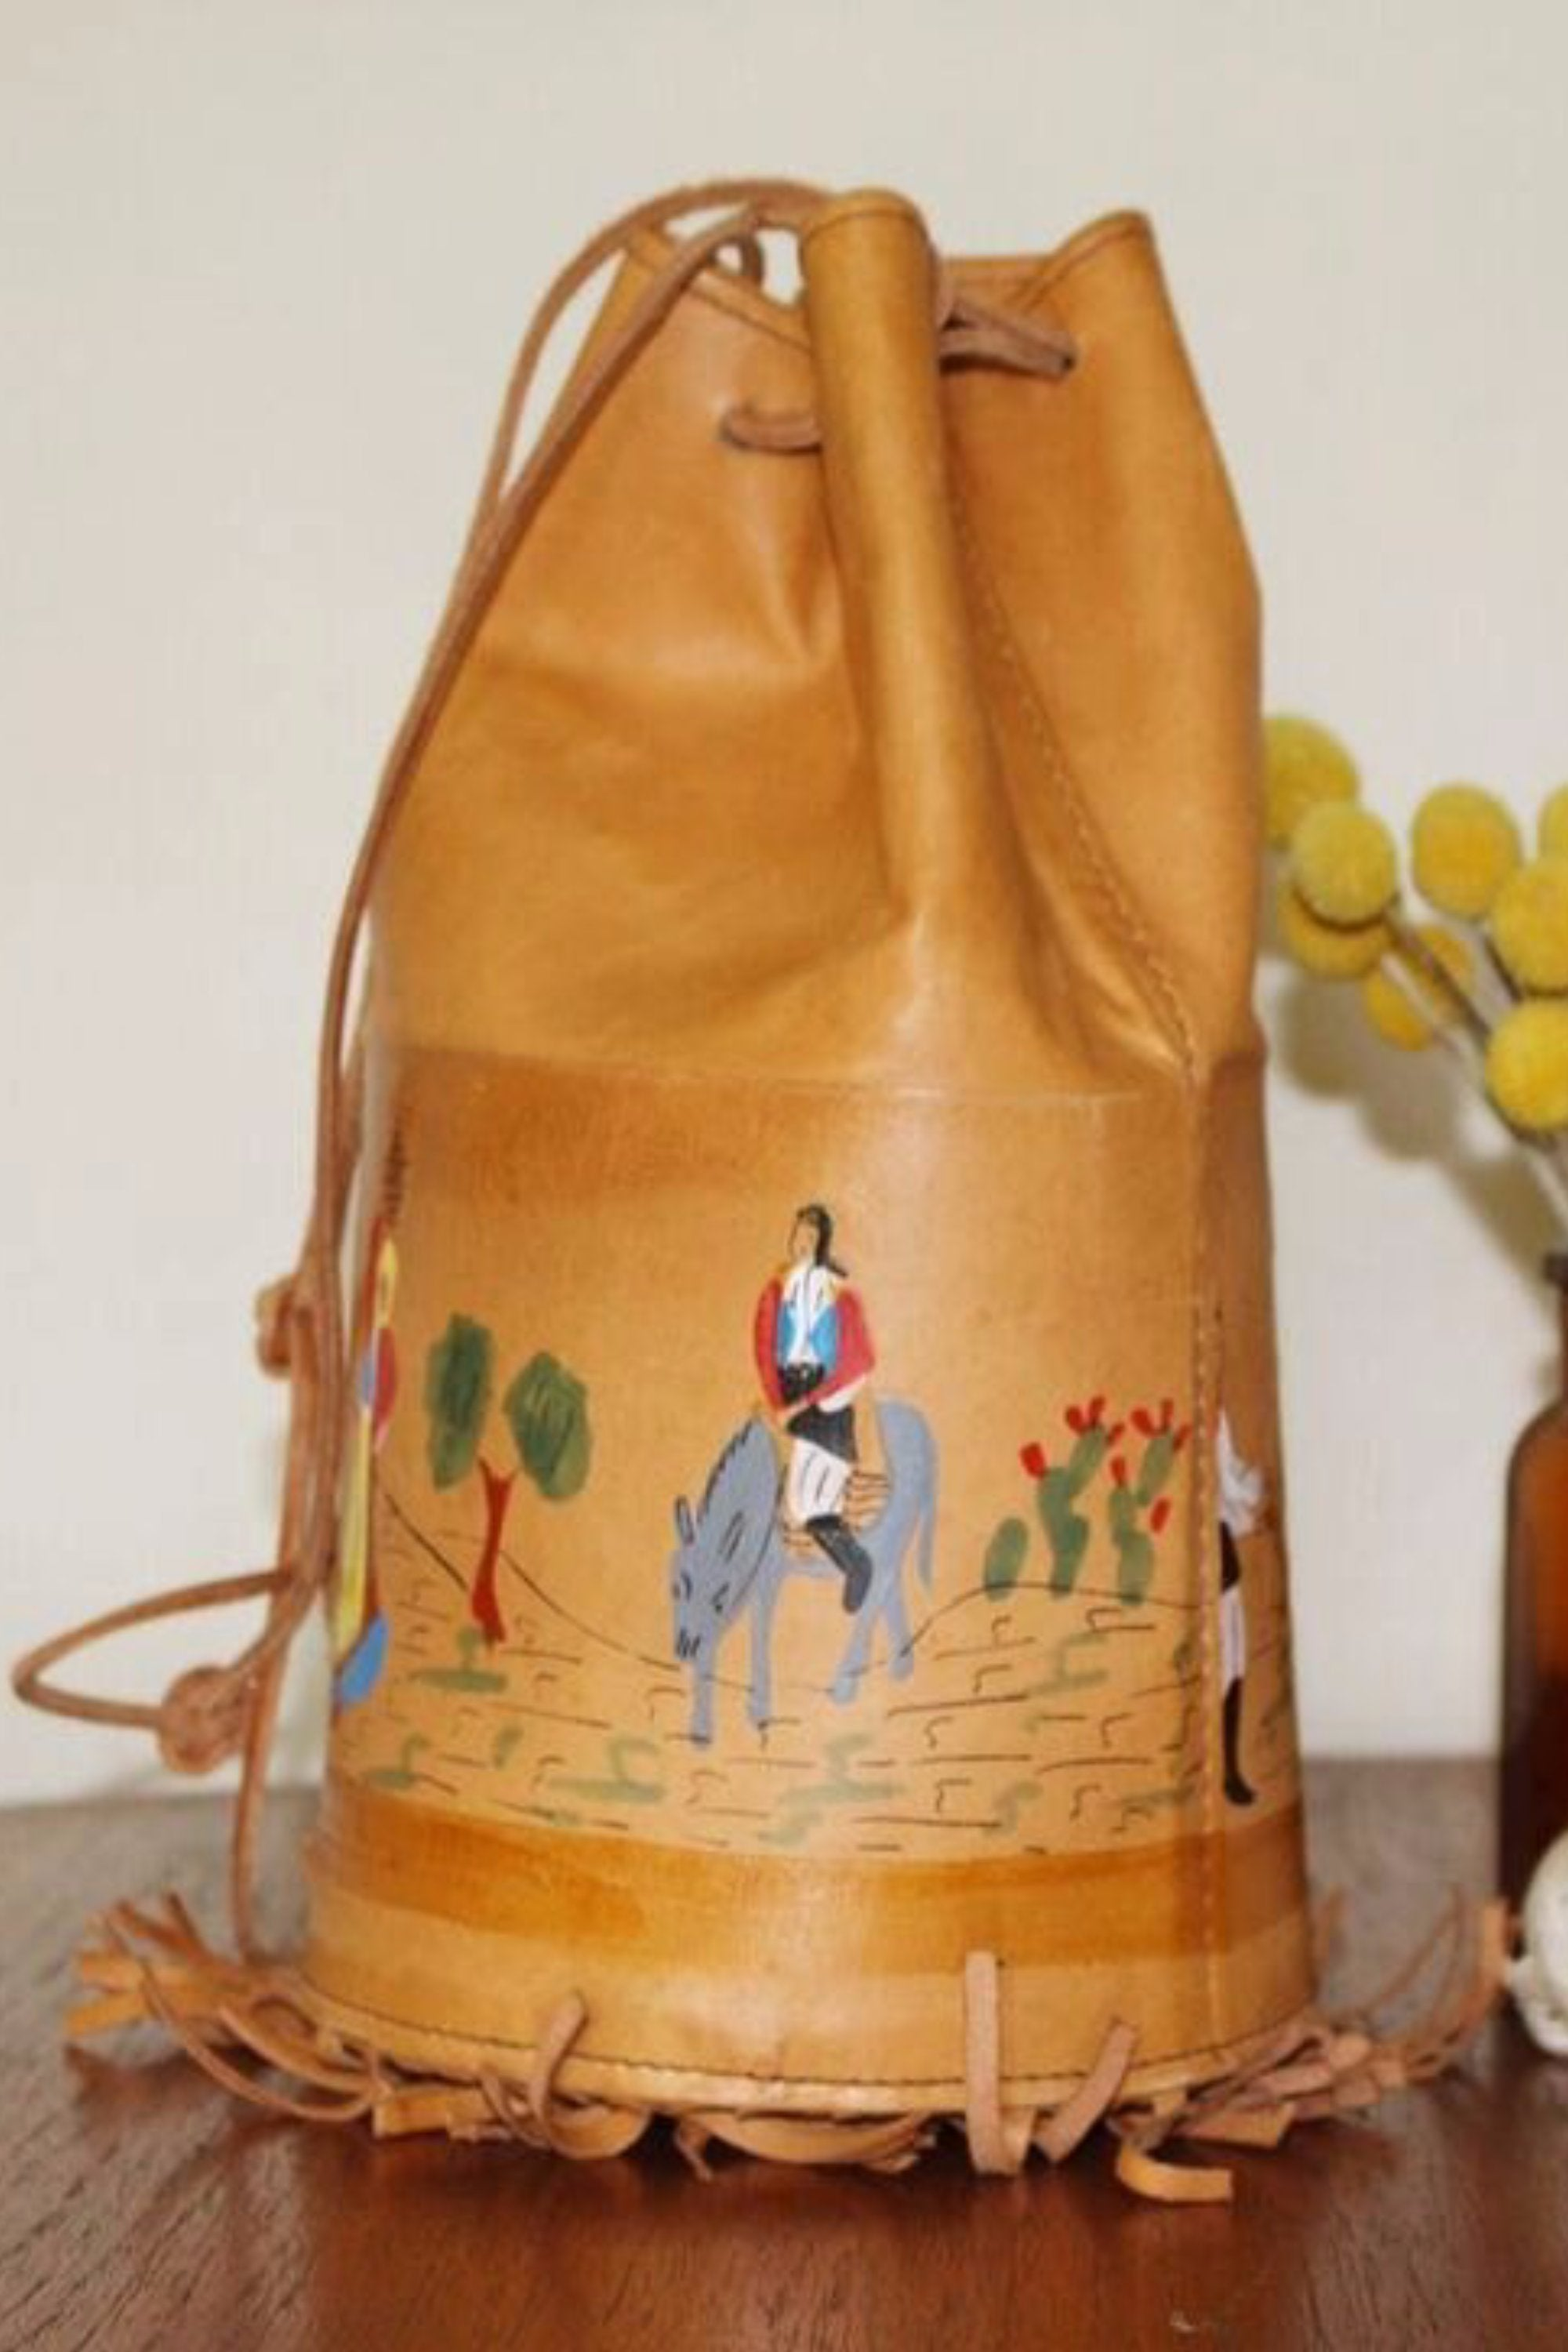 Bucket Bag - Leather Shoulder Bag Gift - Leather Bucket Bag - Leather Casual Bag - Bohemian Leather Bag - Hand Tooled Leather Purse